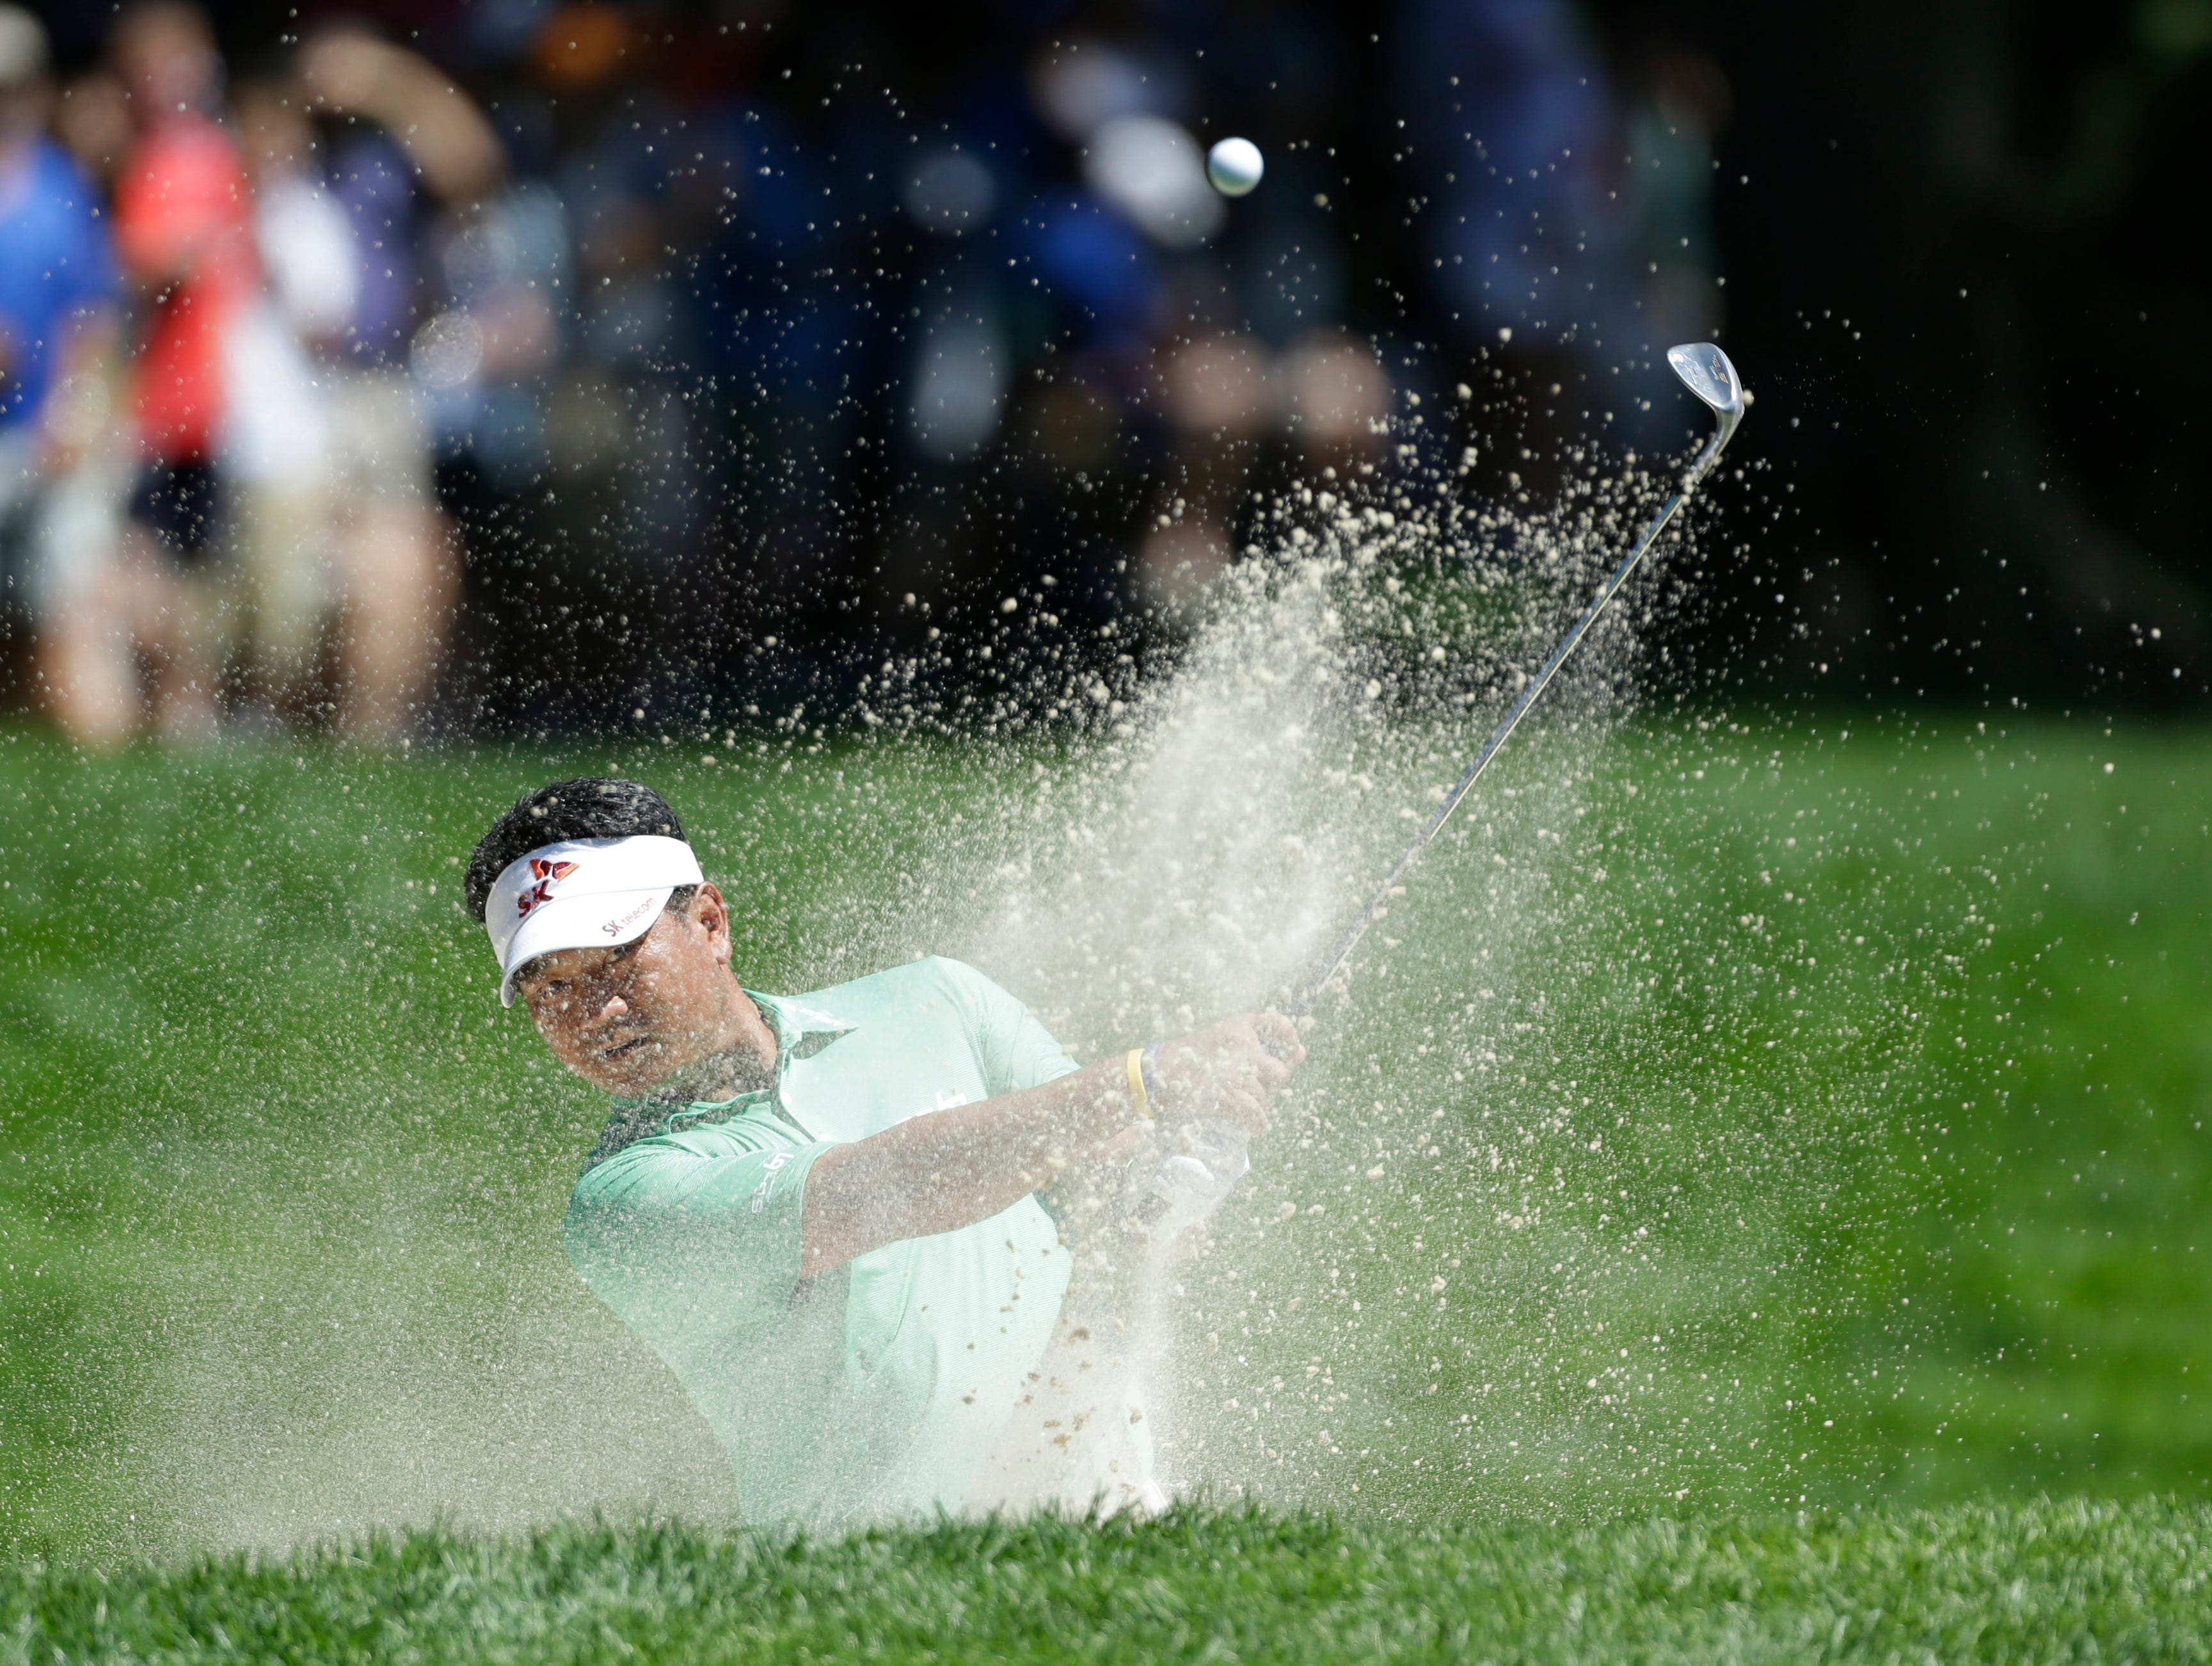 K.J. Choi of South Korea hits out of a bunker on the ninth hole.